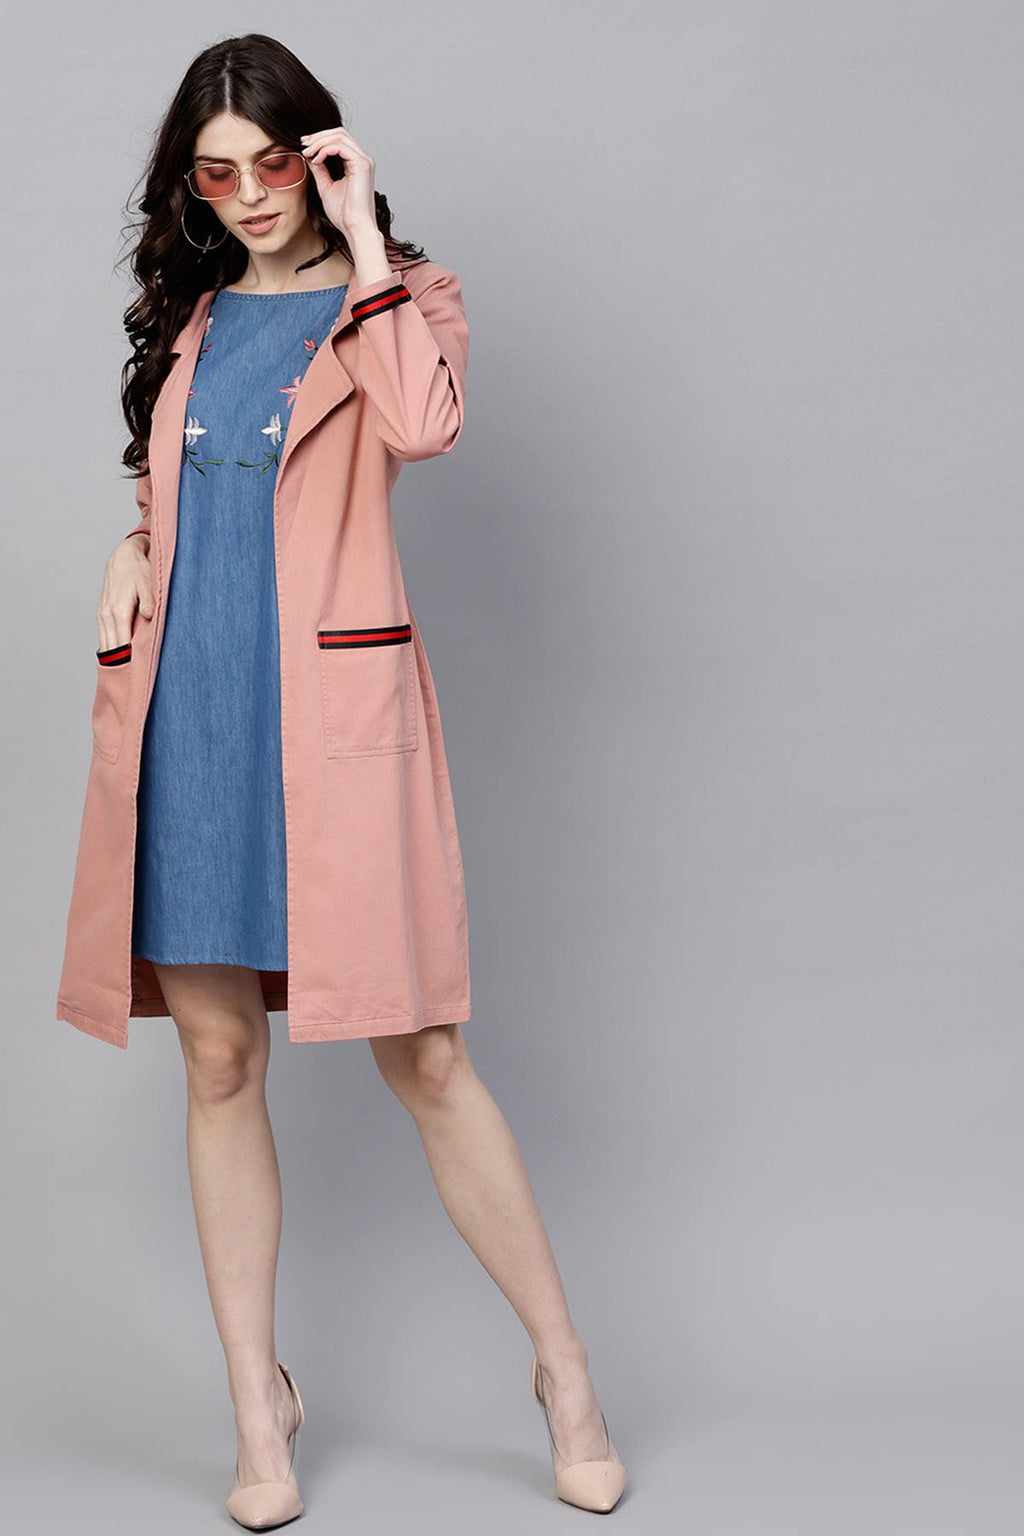 PINK DENIM LONG SHRUG WITH POCKETS - chique boutique